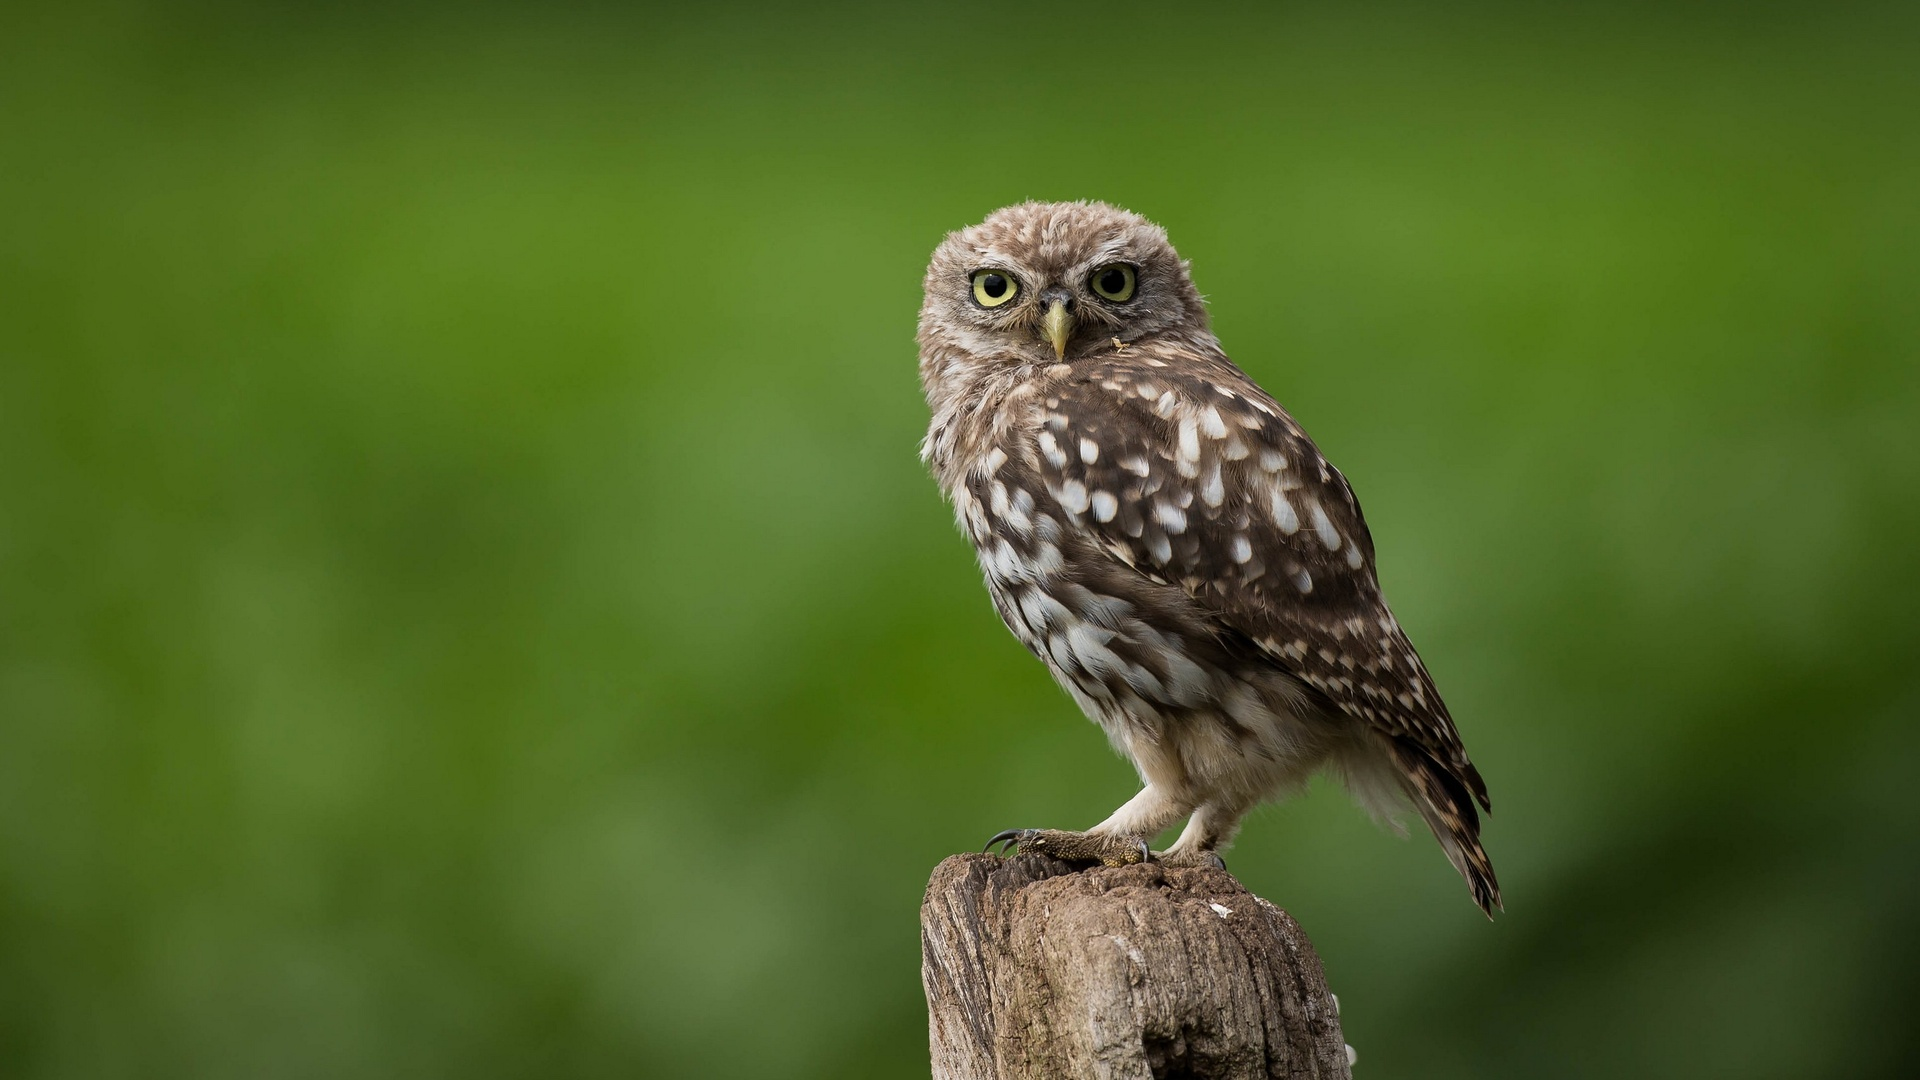 1920x1080 Owl Looking Laptop Full Hd 1080p Hd 4k Wallpapers Images Backgrounds Photos And Pictures